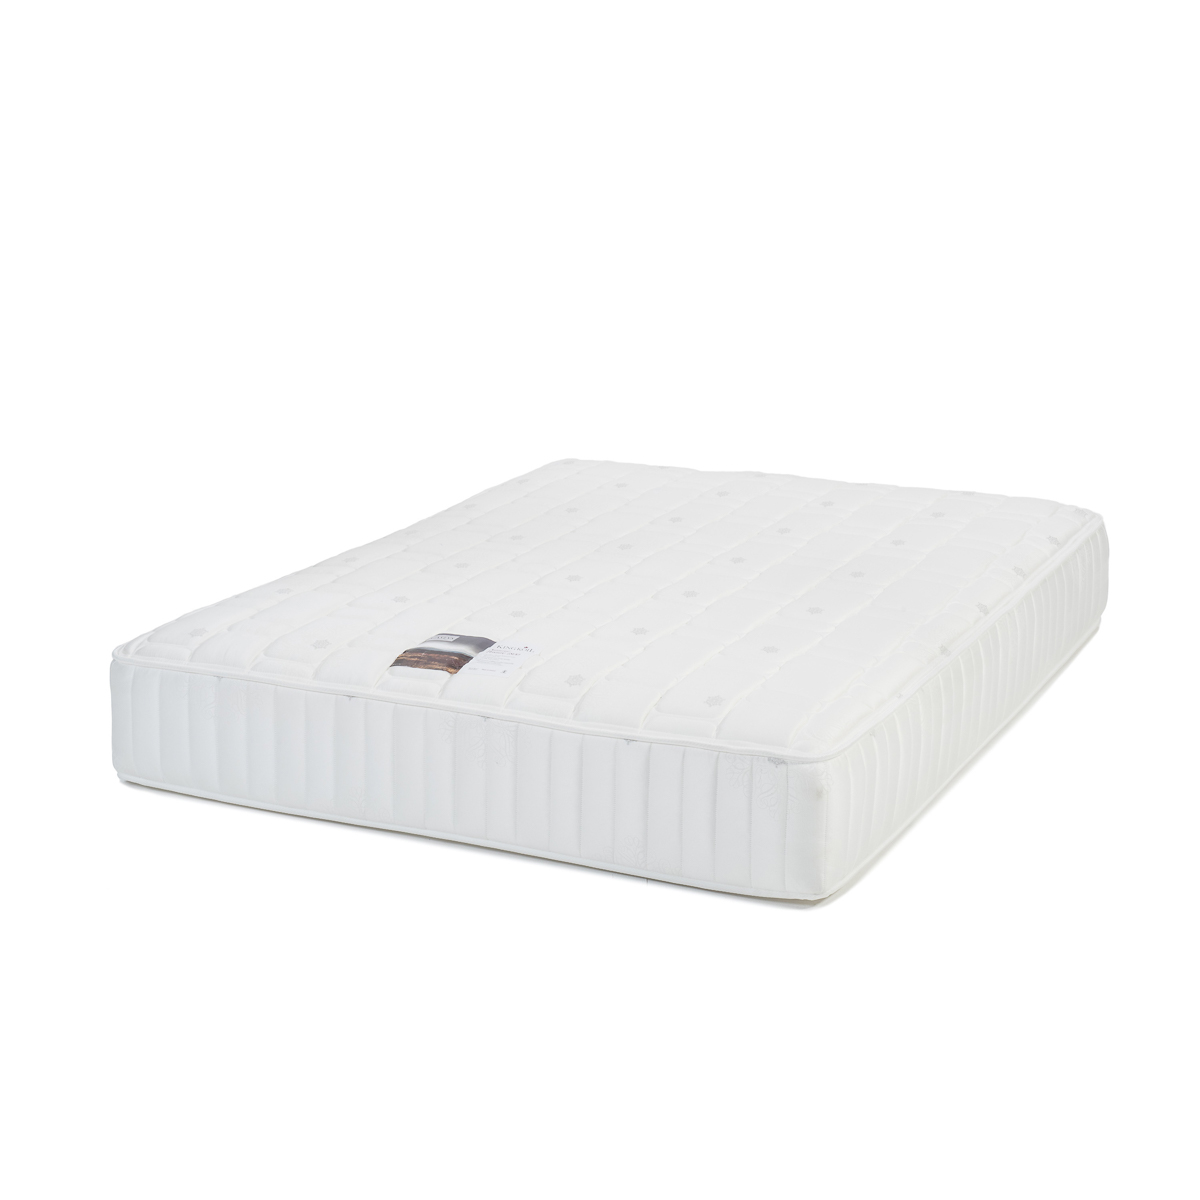 King Koil Natural Posture 1800 Mattress